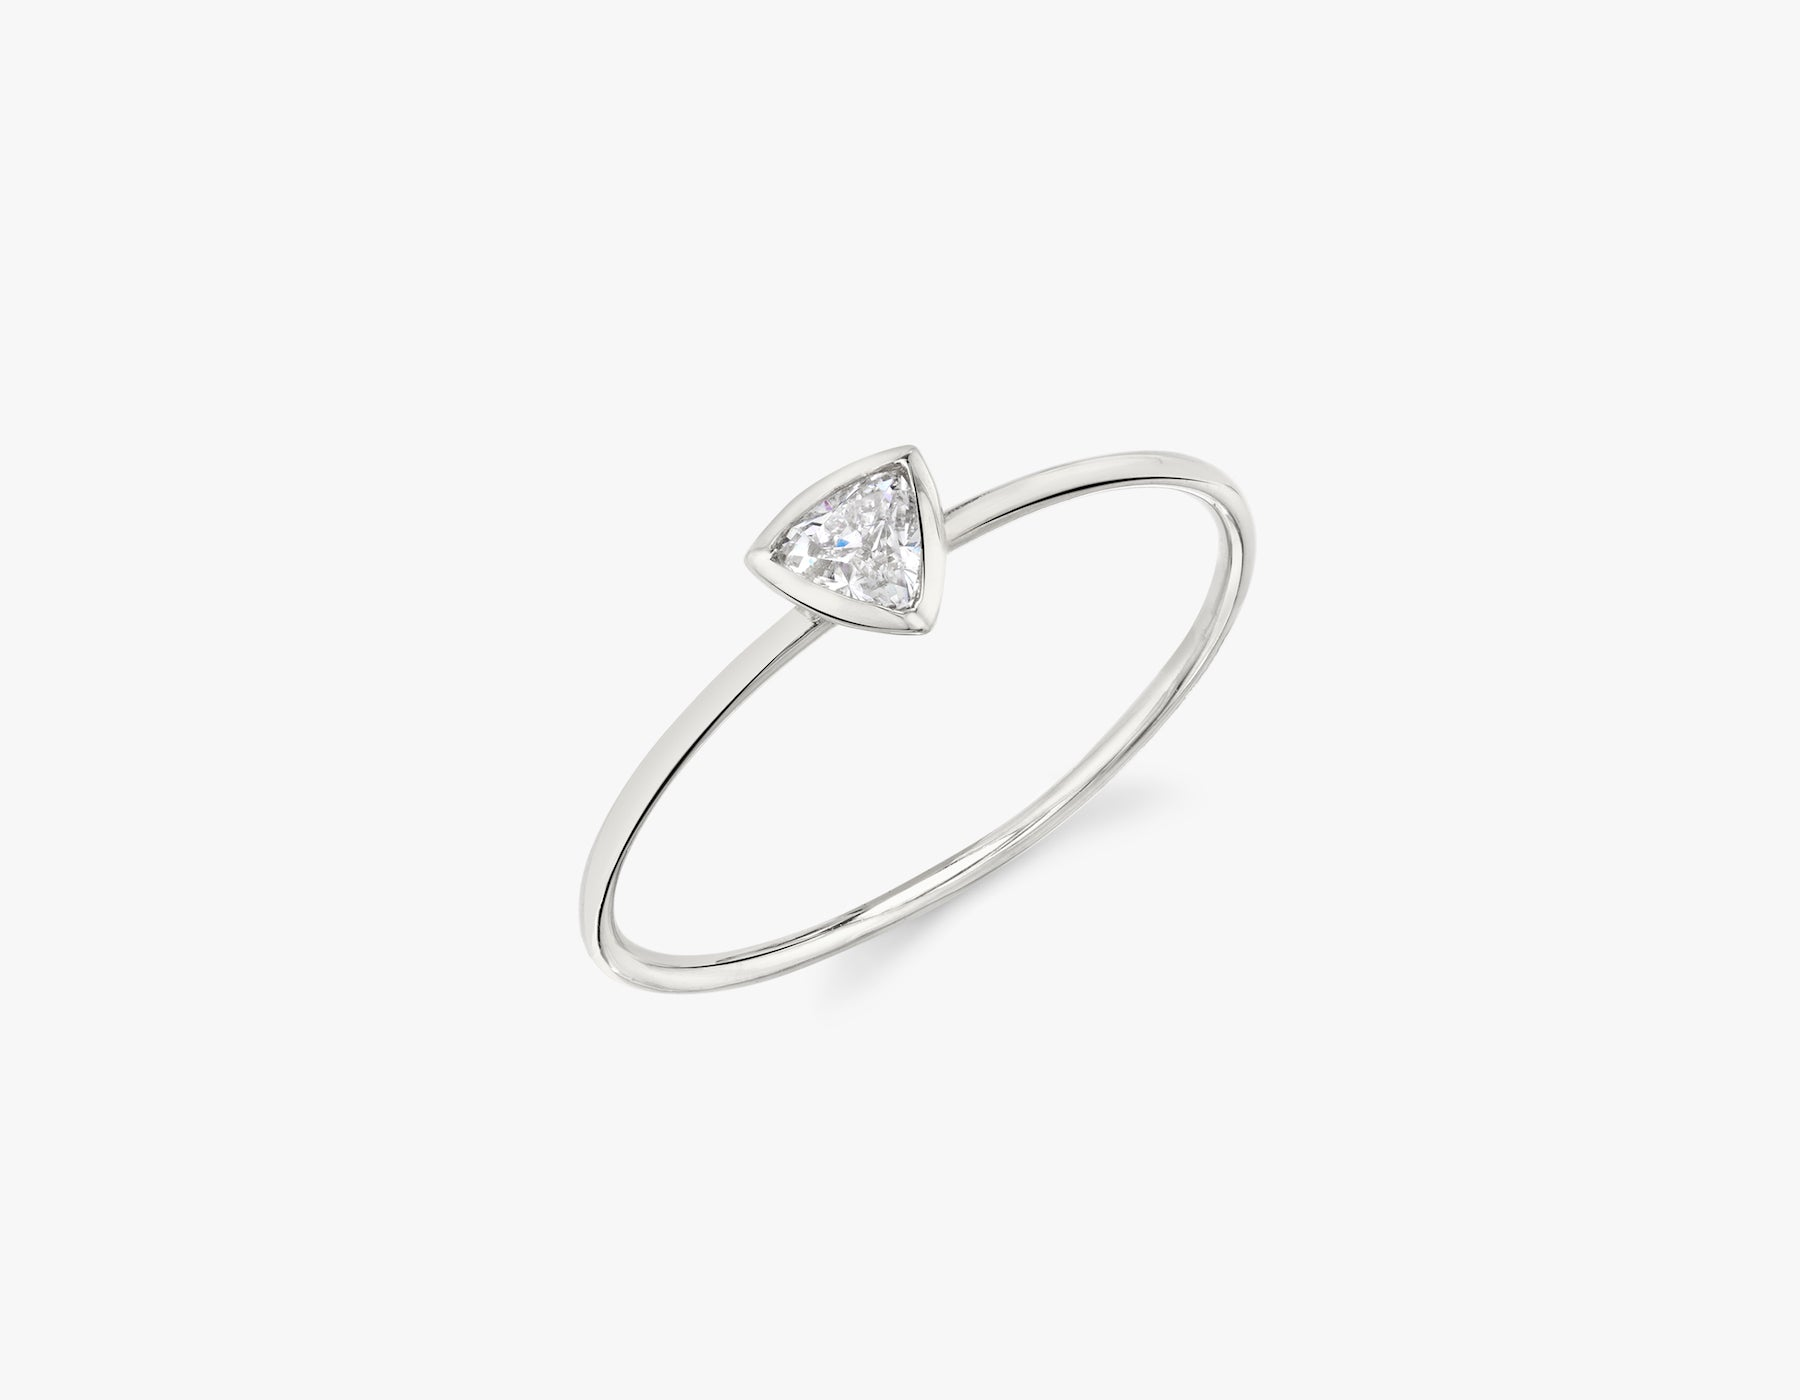 Vrai simple minimalist Trillion Diamond Bezel Ring, 14K White Gold